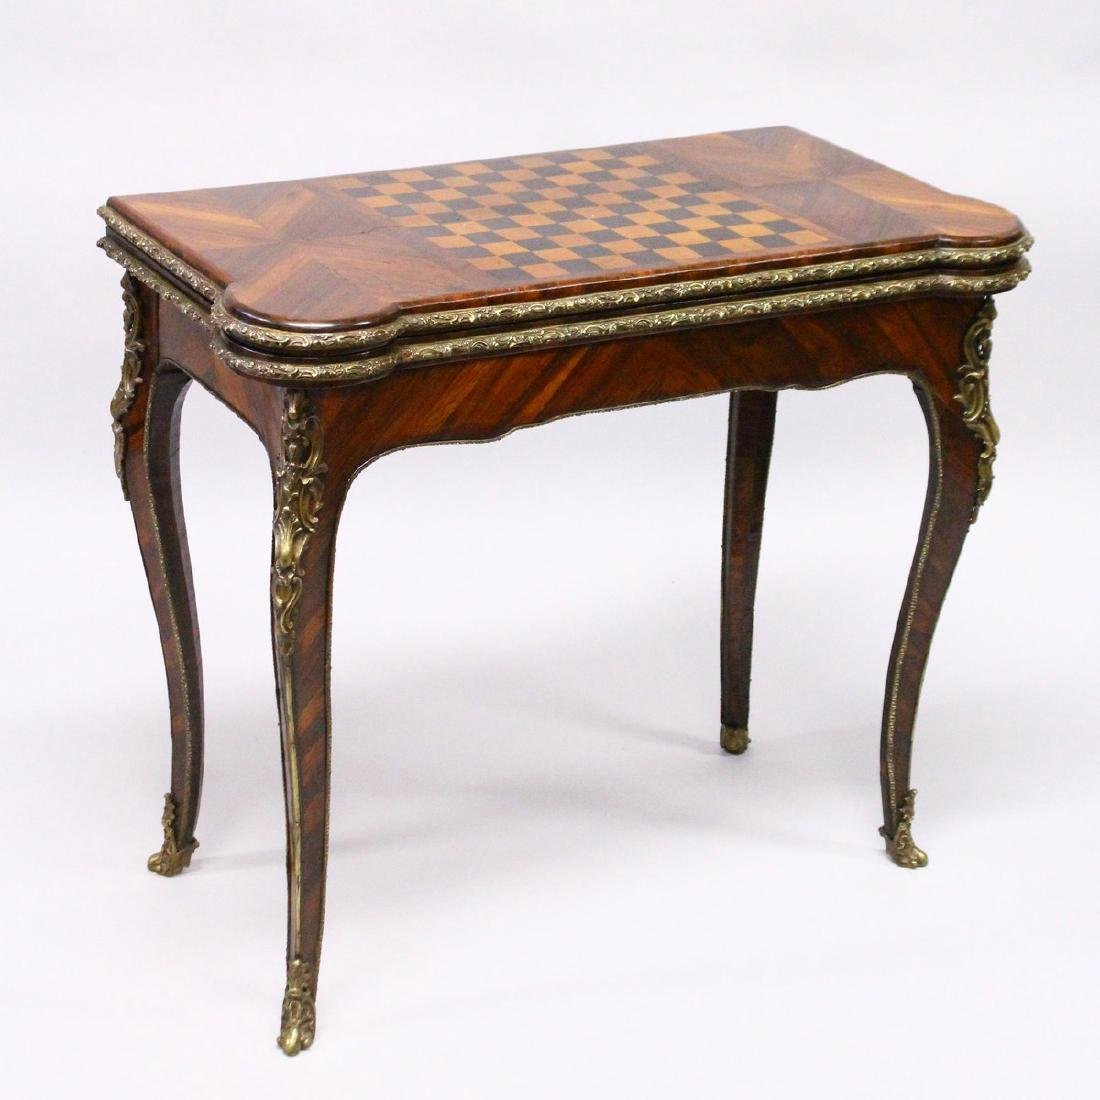 A GOOD GEORGE II GAMES TABLE, the folding top with